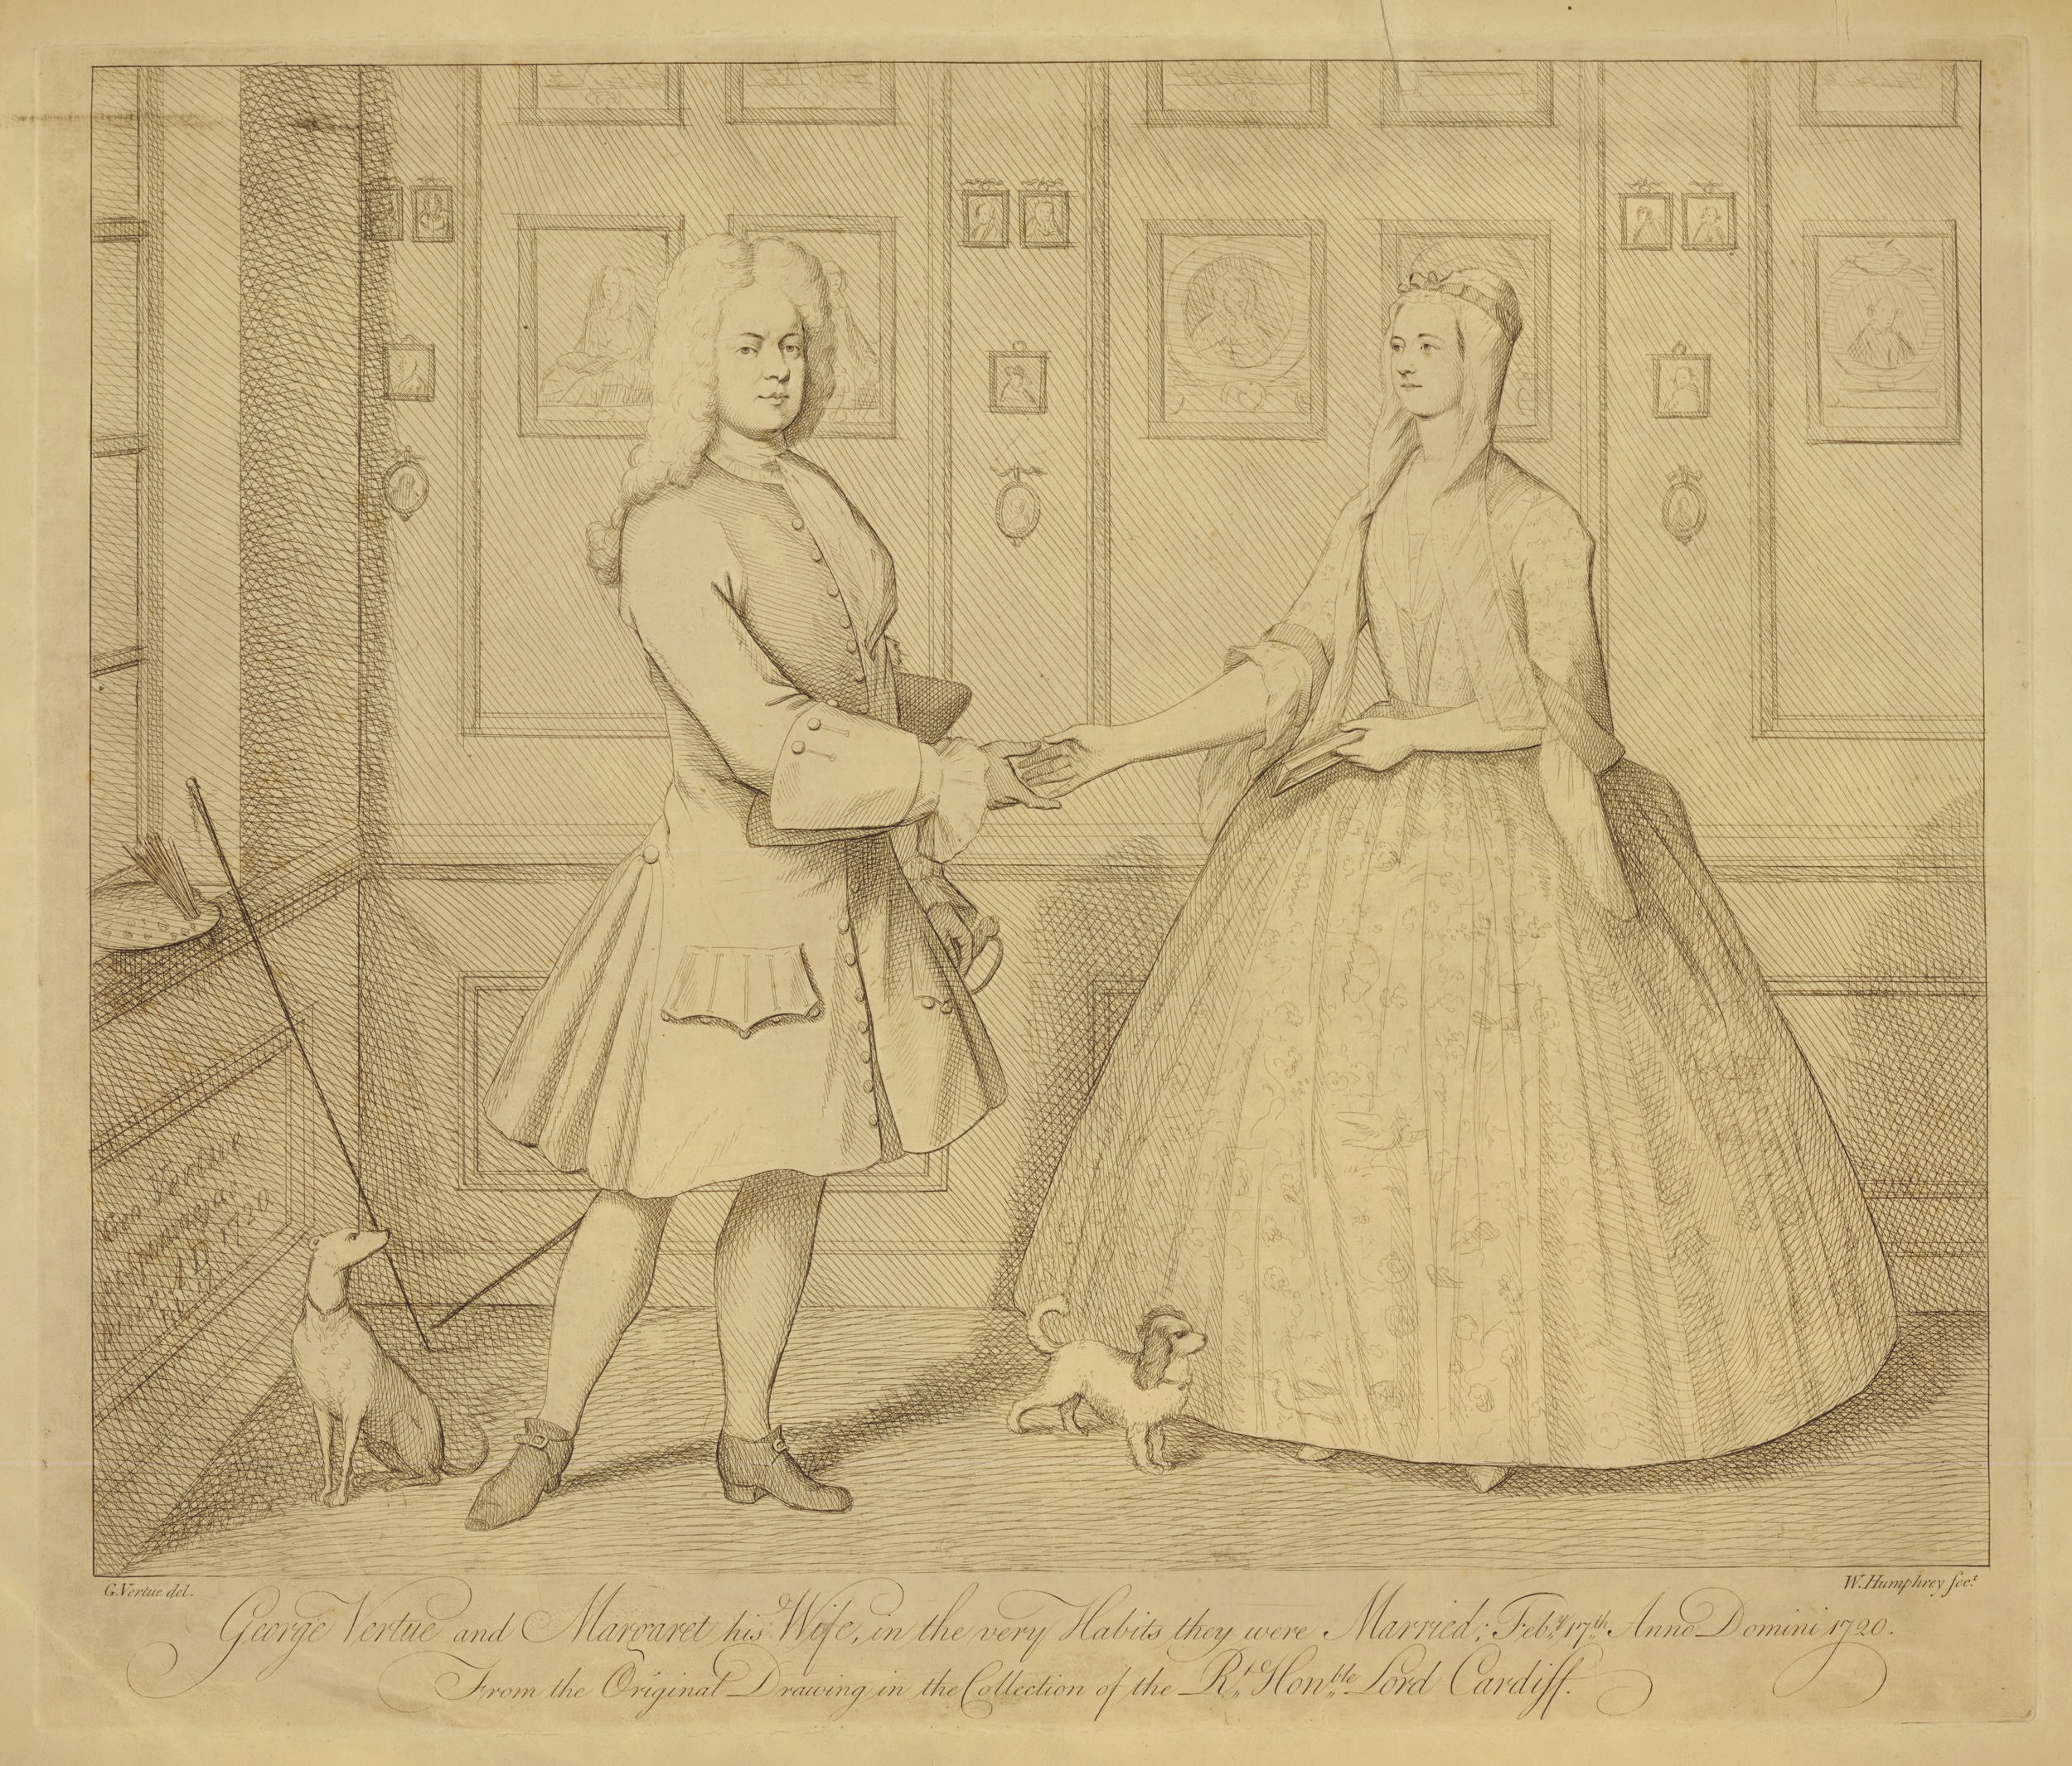 15 Wm Humphrey after George Vertue GV & Margaret his Wife in the very Habits they were Married 1765to1810 36.8x43.4cm BM